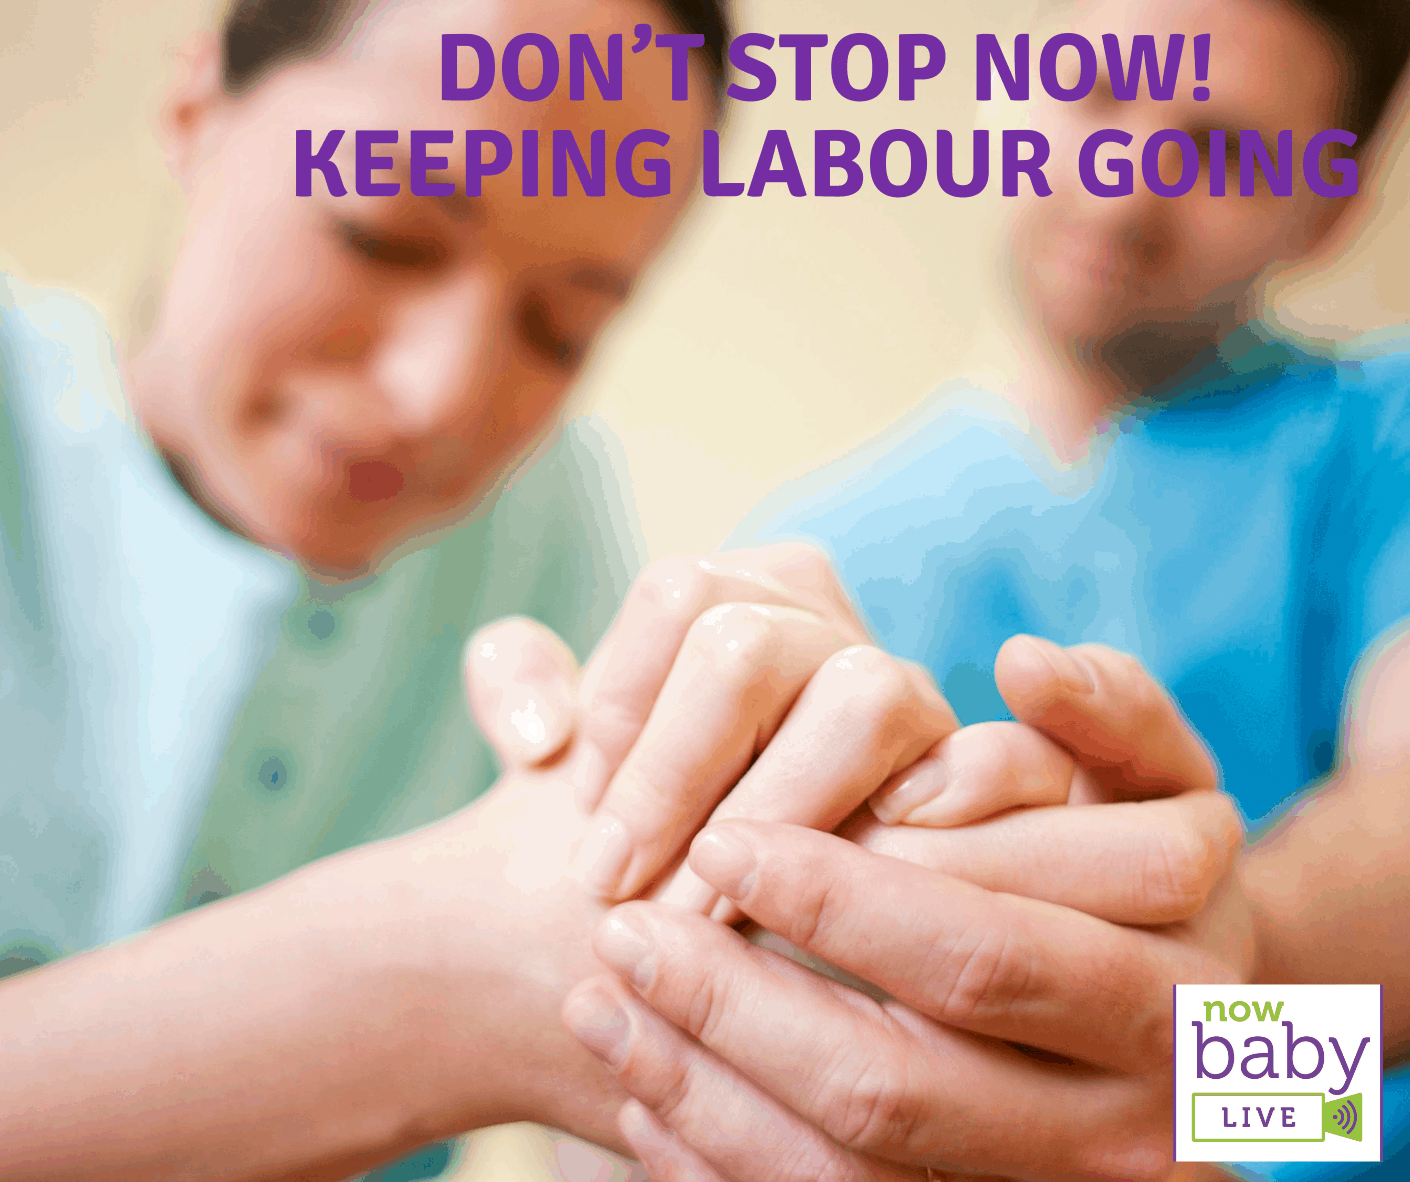 Don't stop now! Keeping labour going